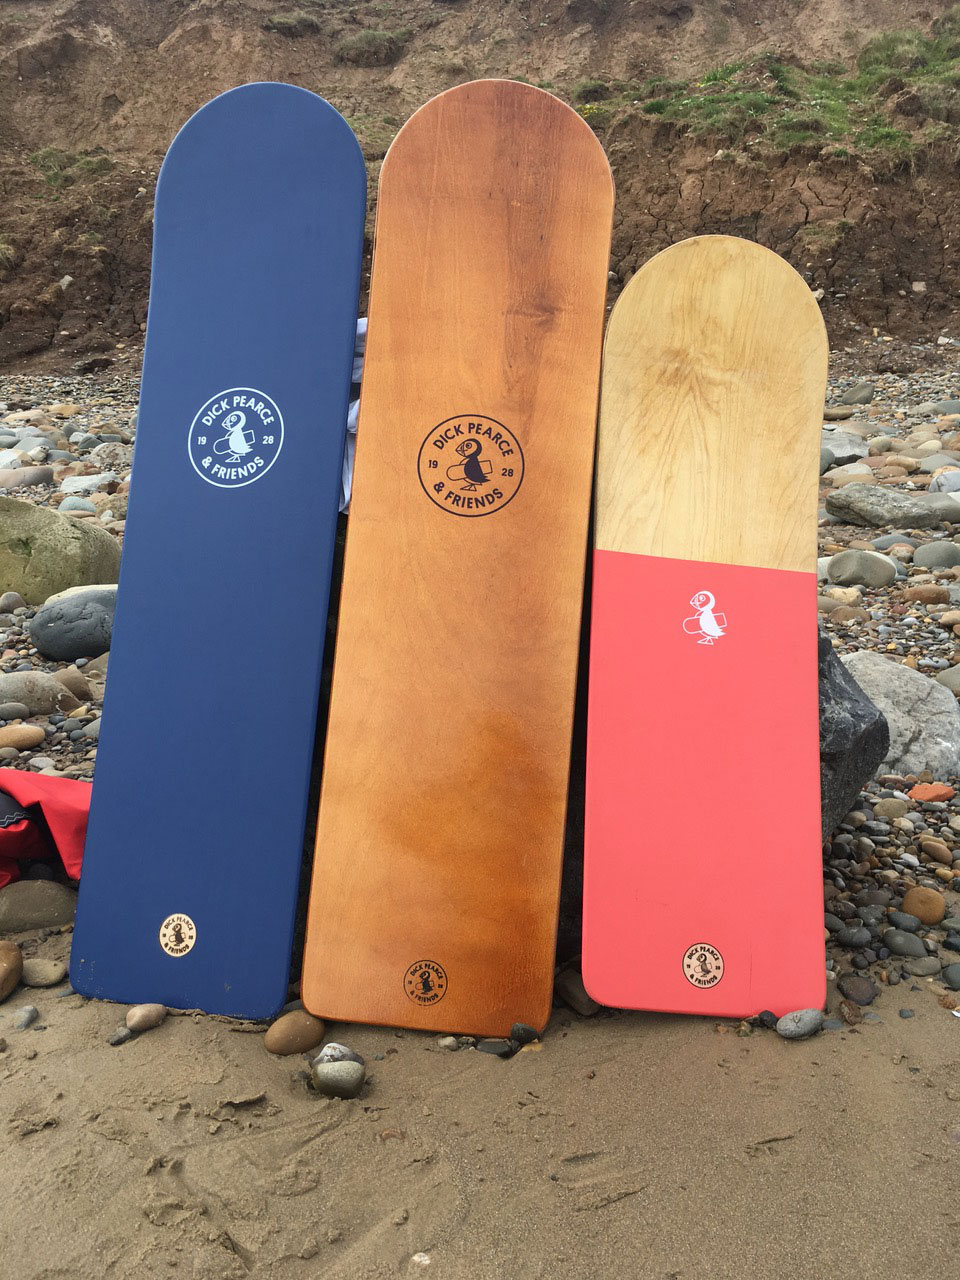 Dick Pearce and Friends Family of Bellyboards